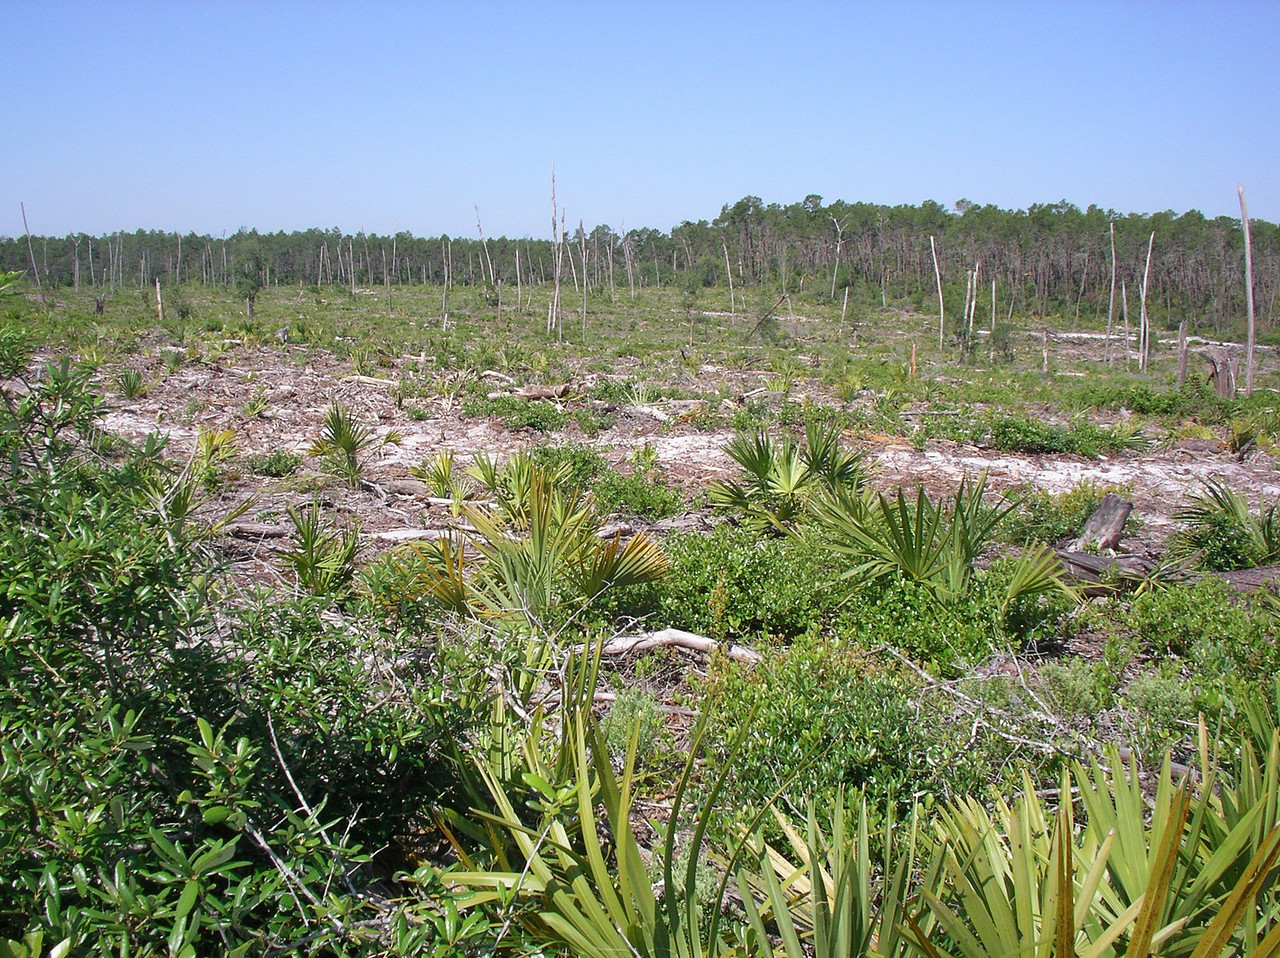 Area cleared after hurricanes. <br /> Photo credit: Ian Brown / Florida Trail Association